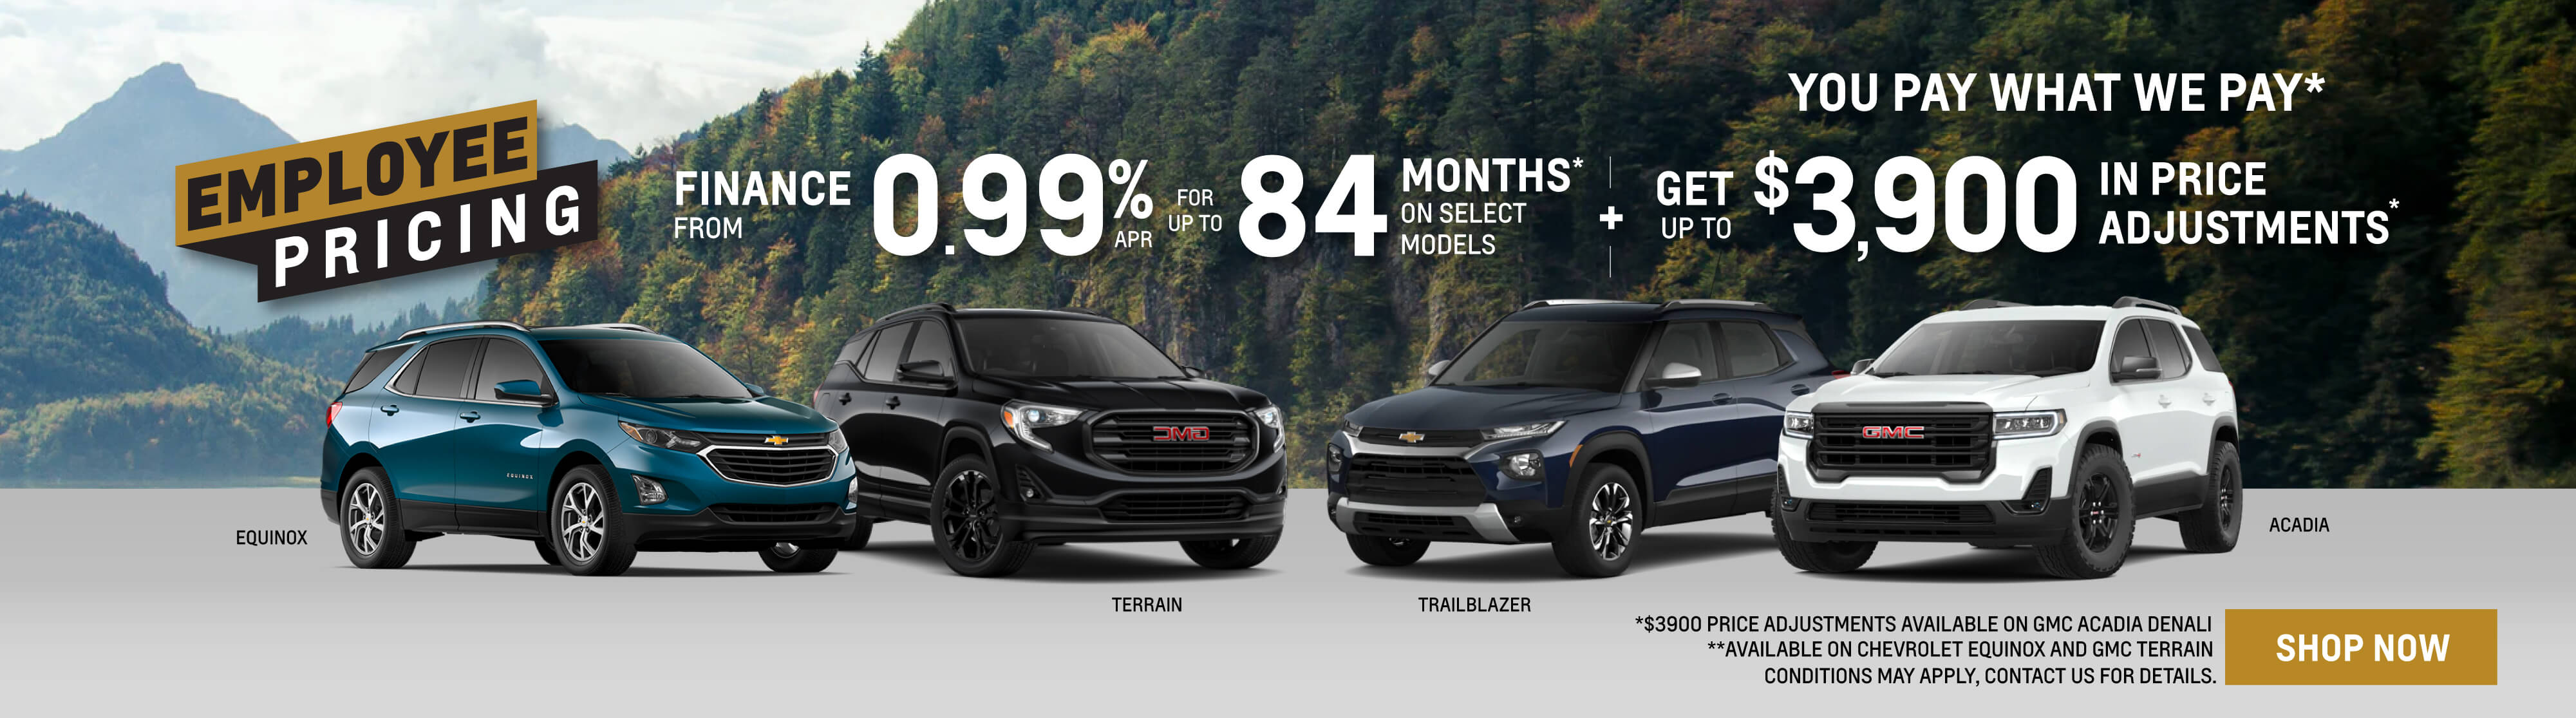 Chevrolet Buick GMC Employee Pricing Event 2021